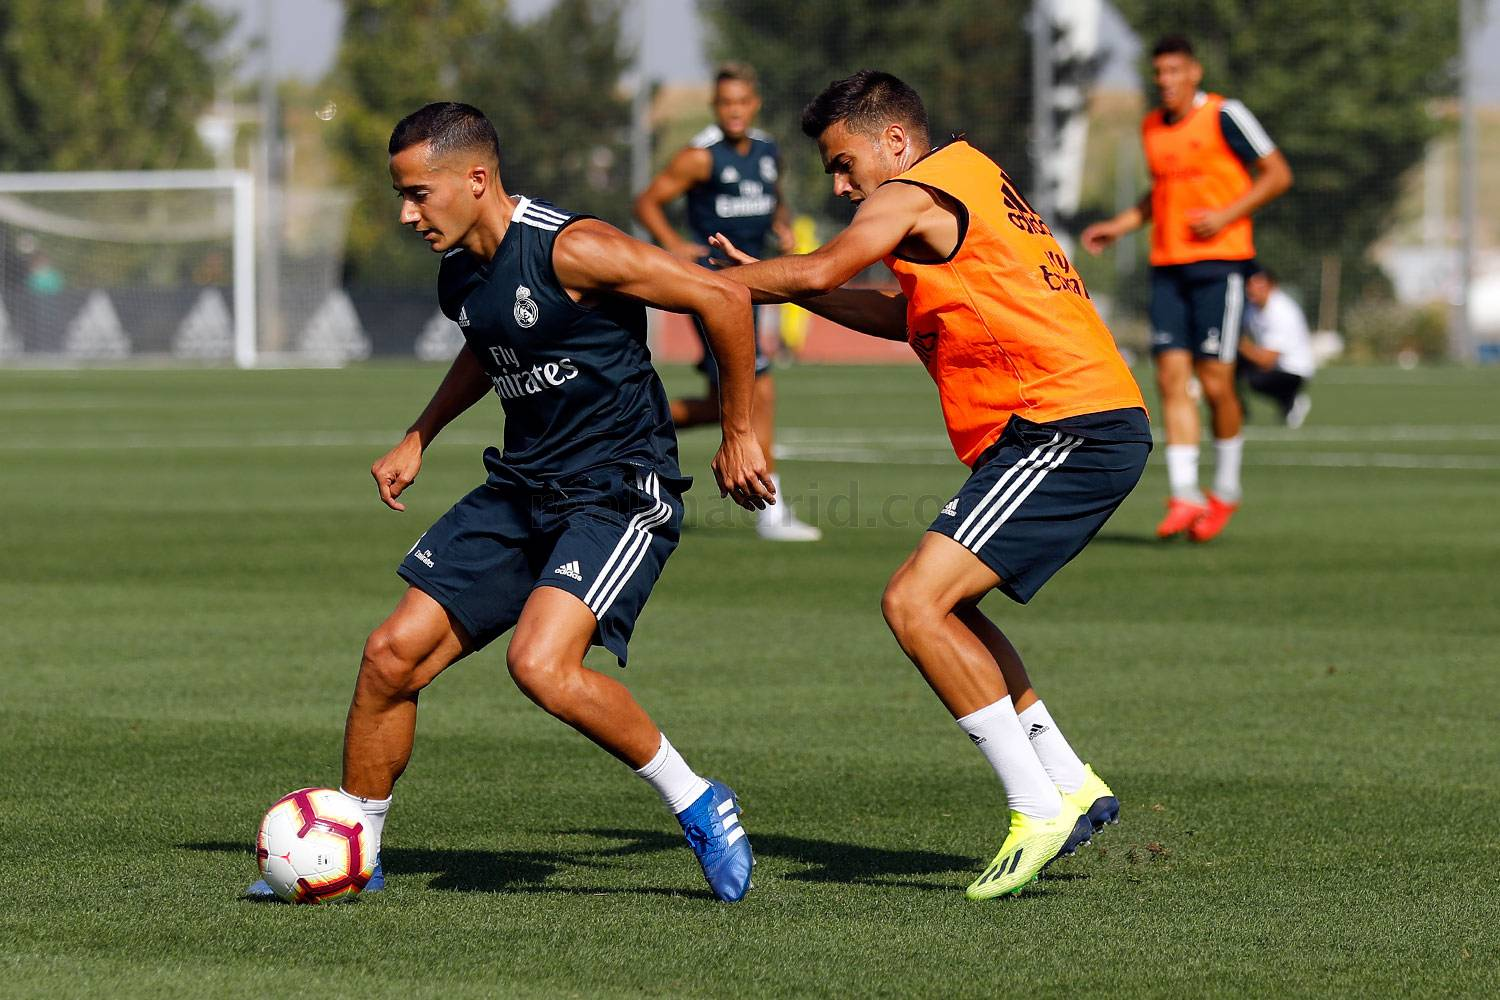 Real Madrid - Entrenamiento del Real Madrid - 05-09-2018